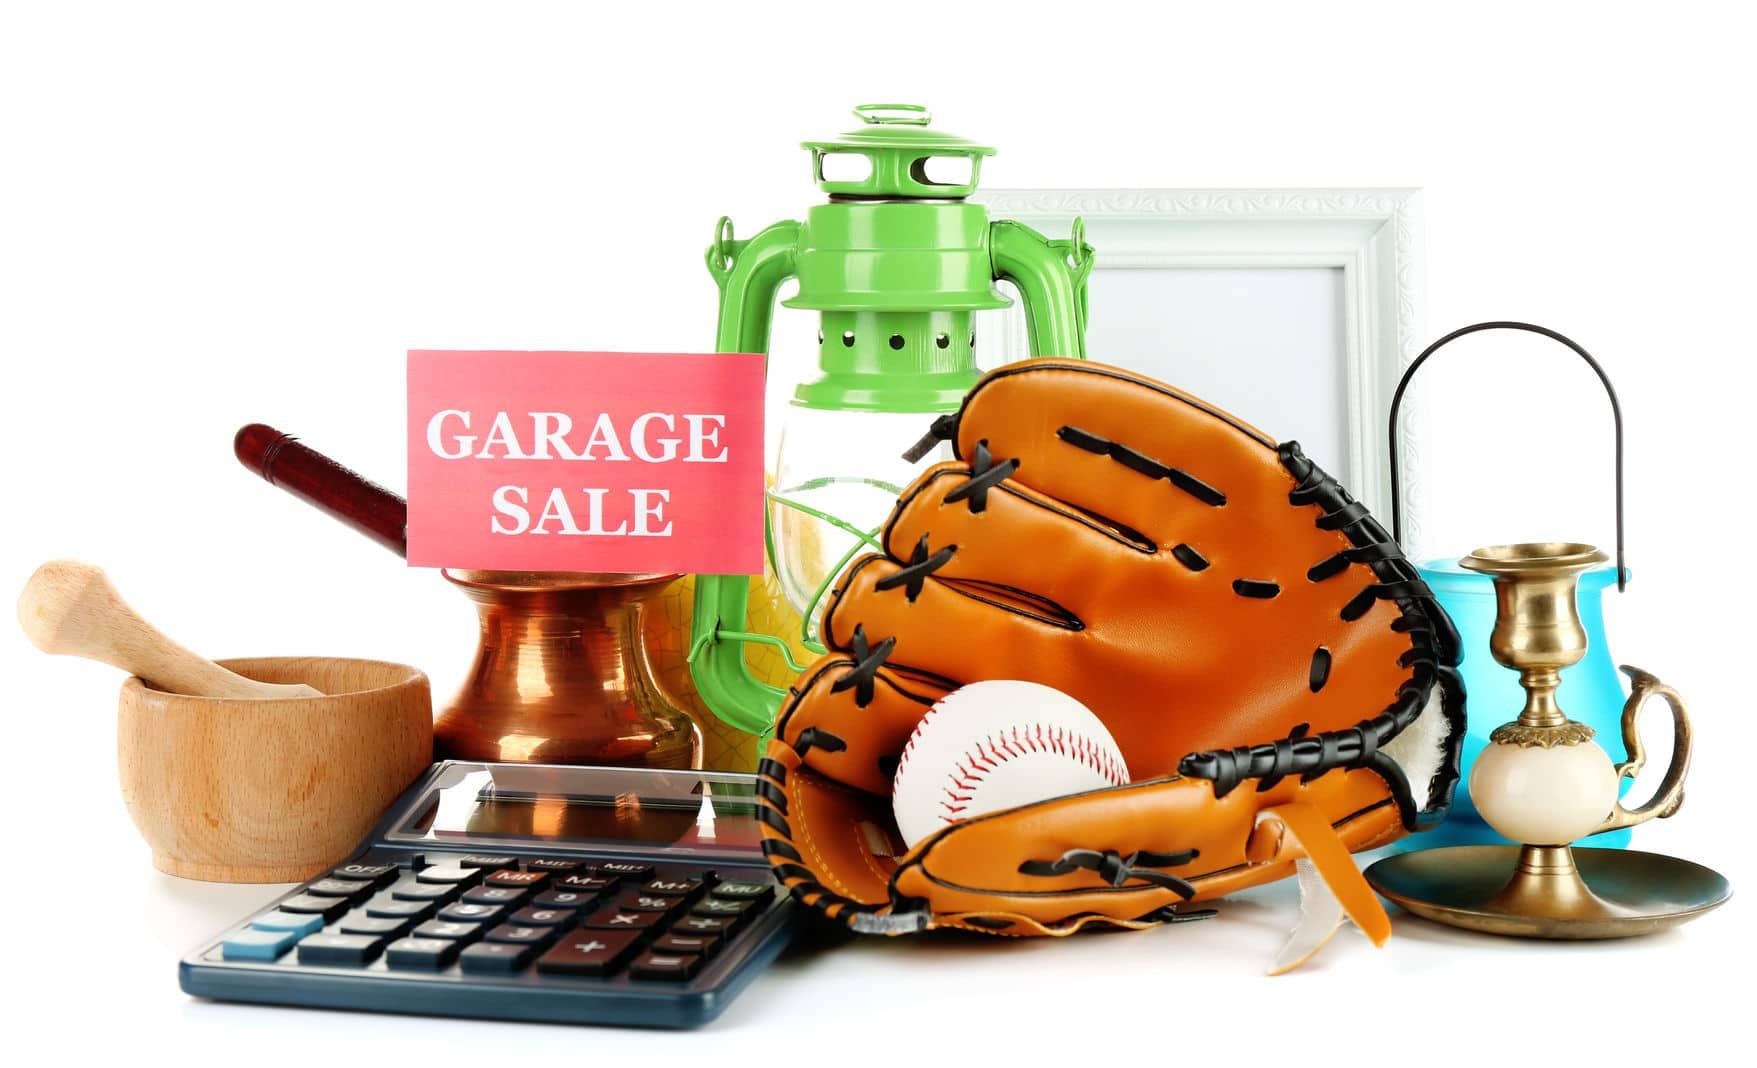 Hosting a garage sale is a smart way to earn extra cash fast.